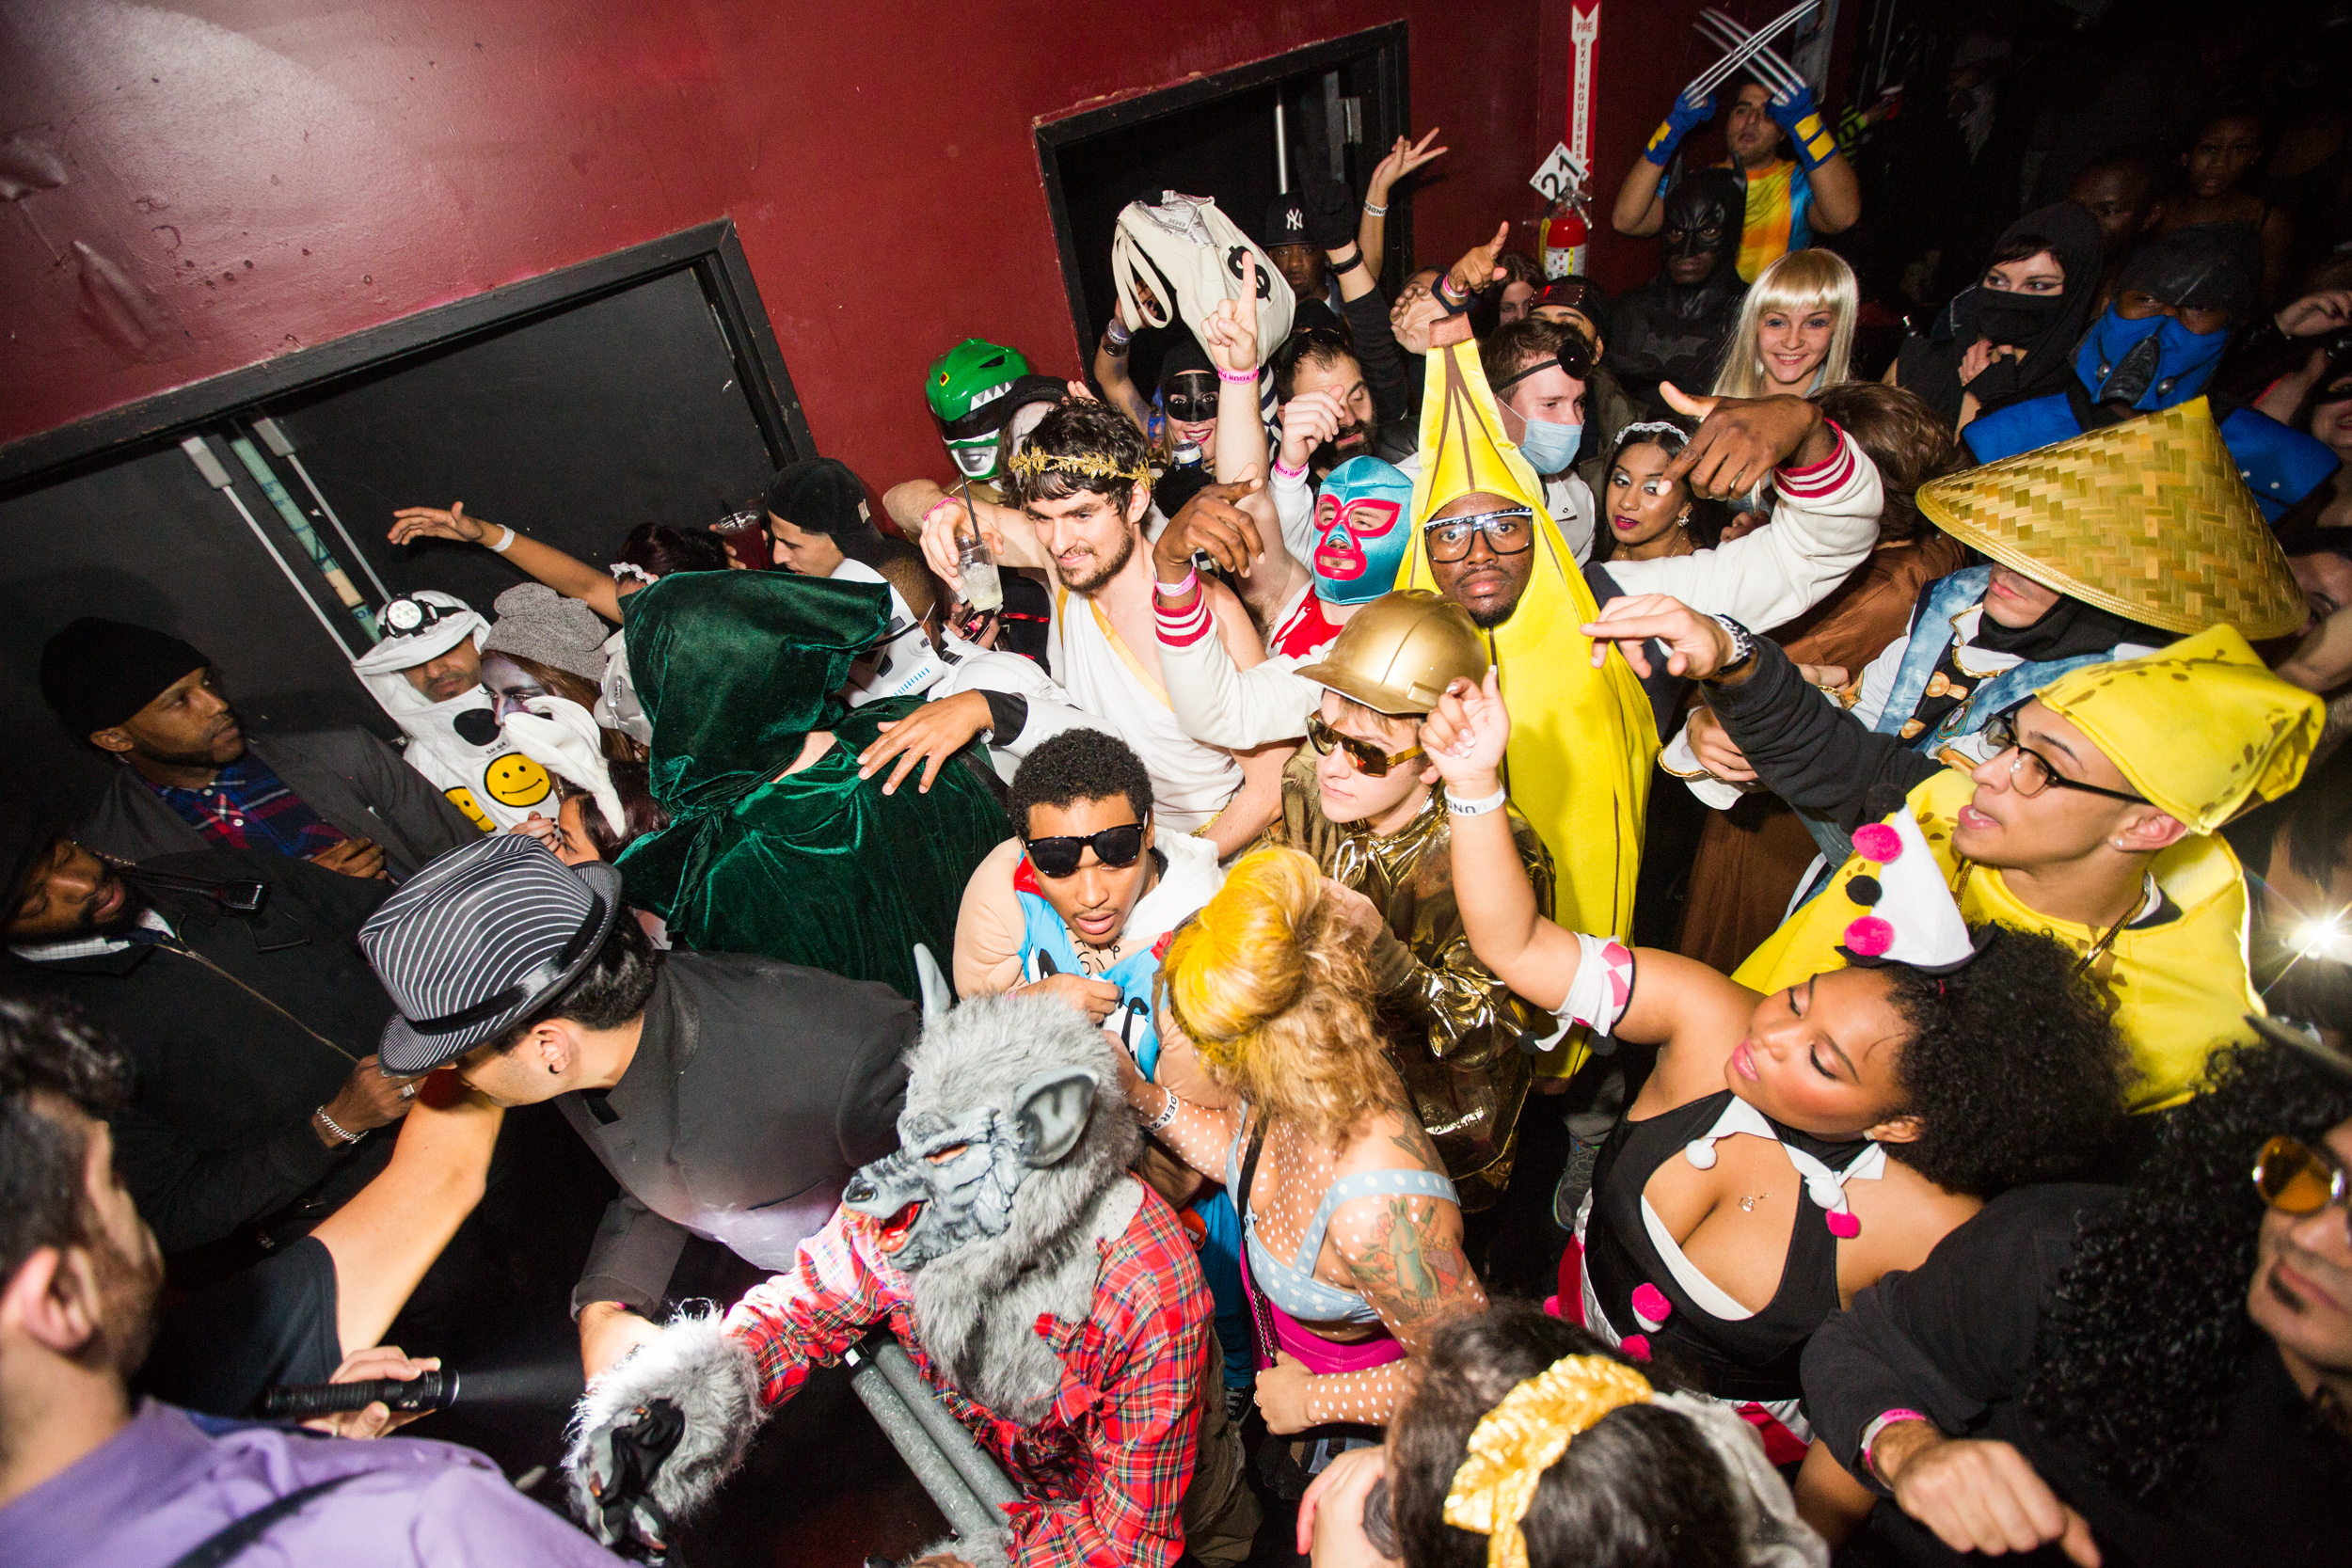 WHERE'S THE AFTER PARTY? : 15 SIGNS IT'S TIME TO CALL IT A NIGHT